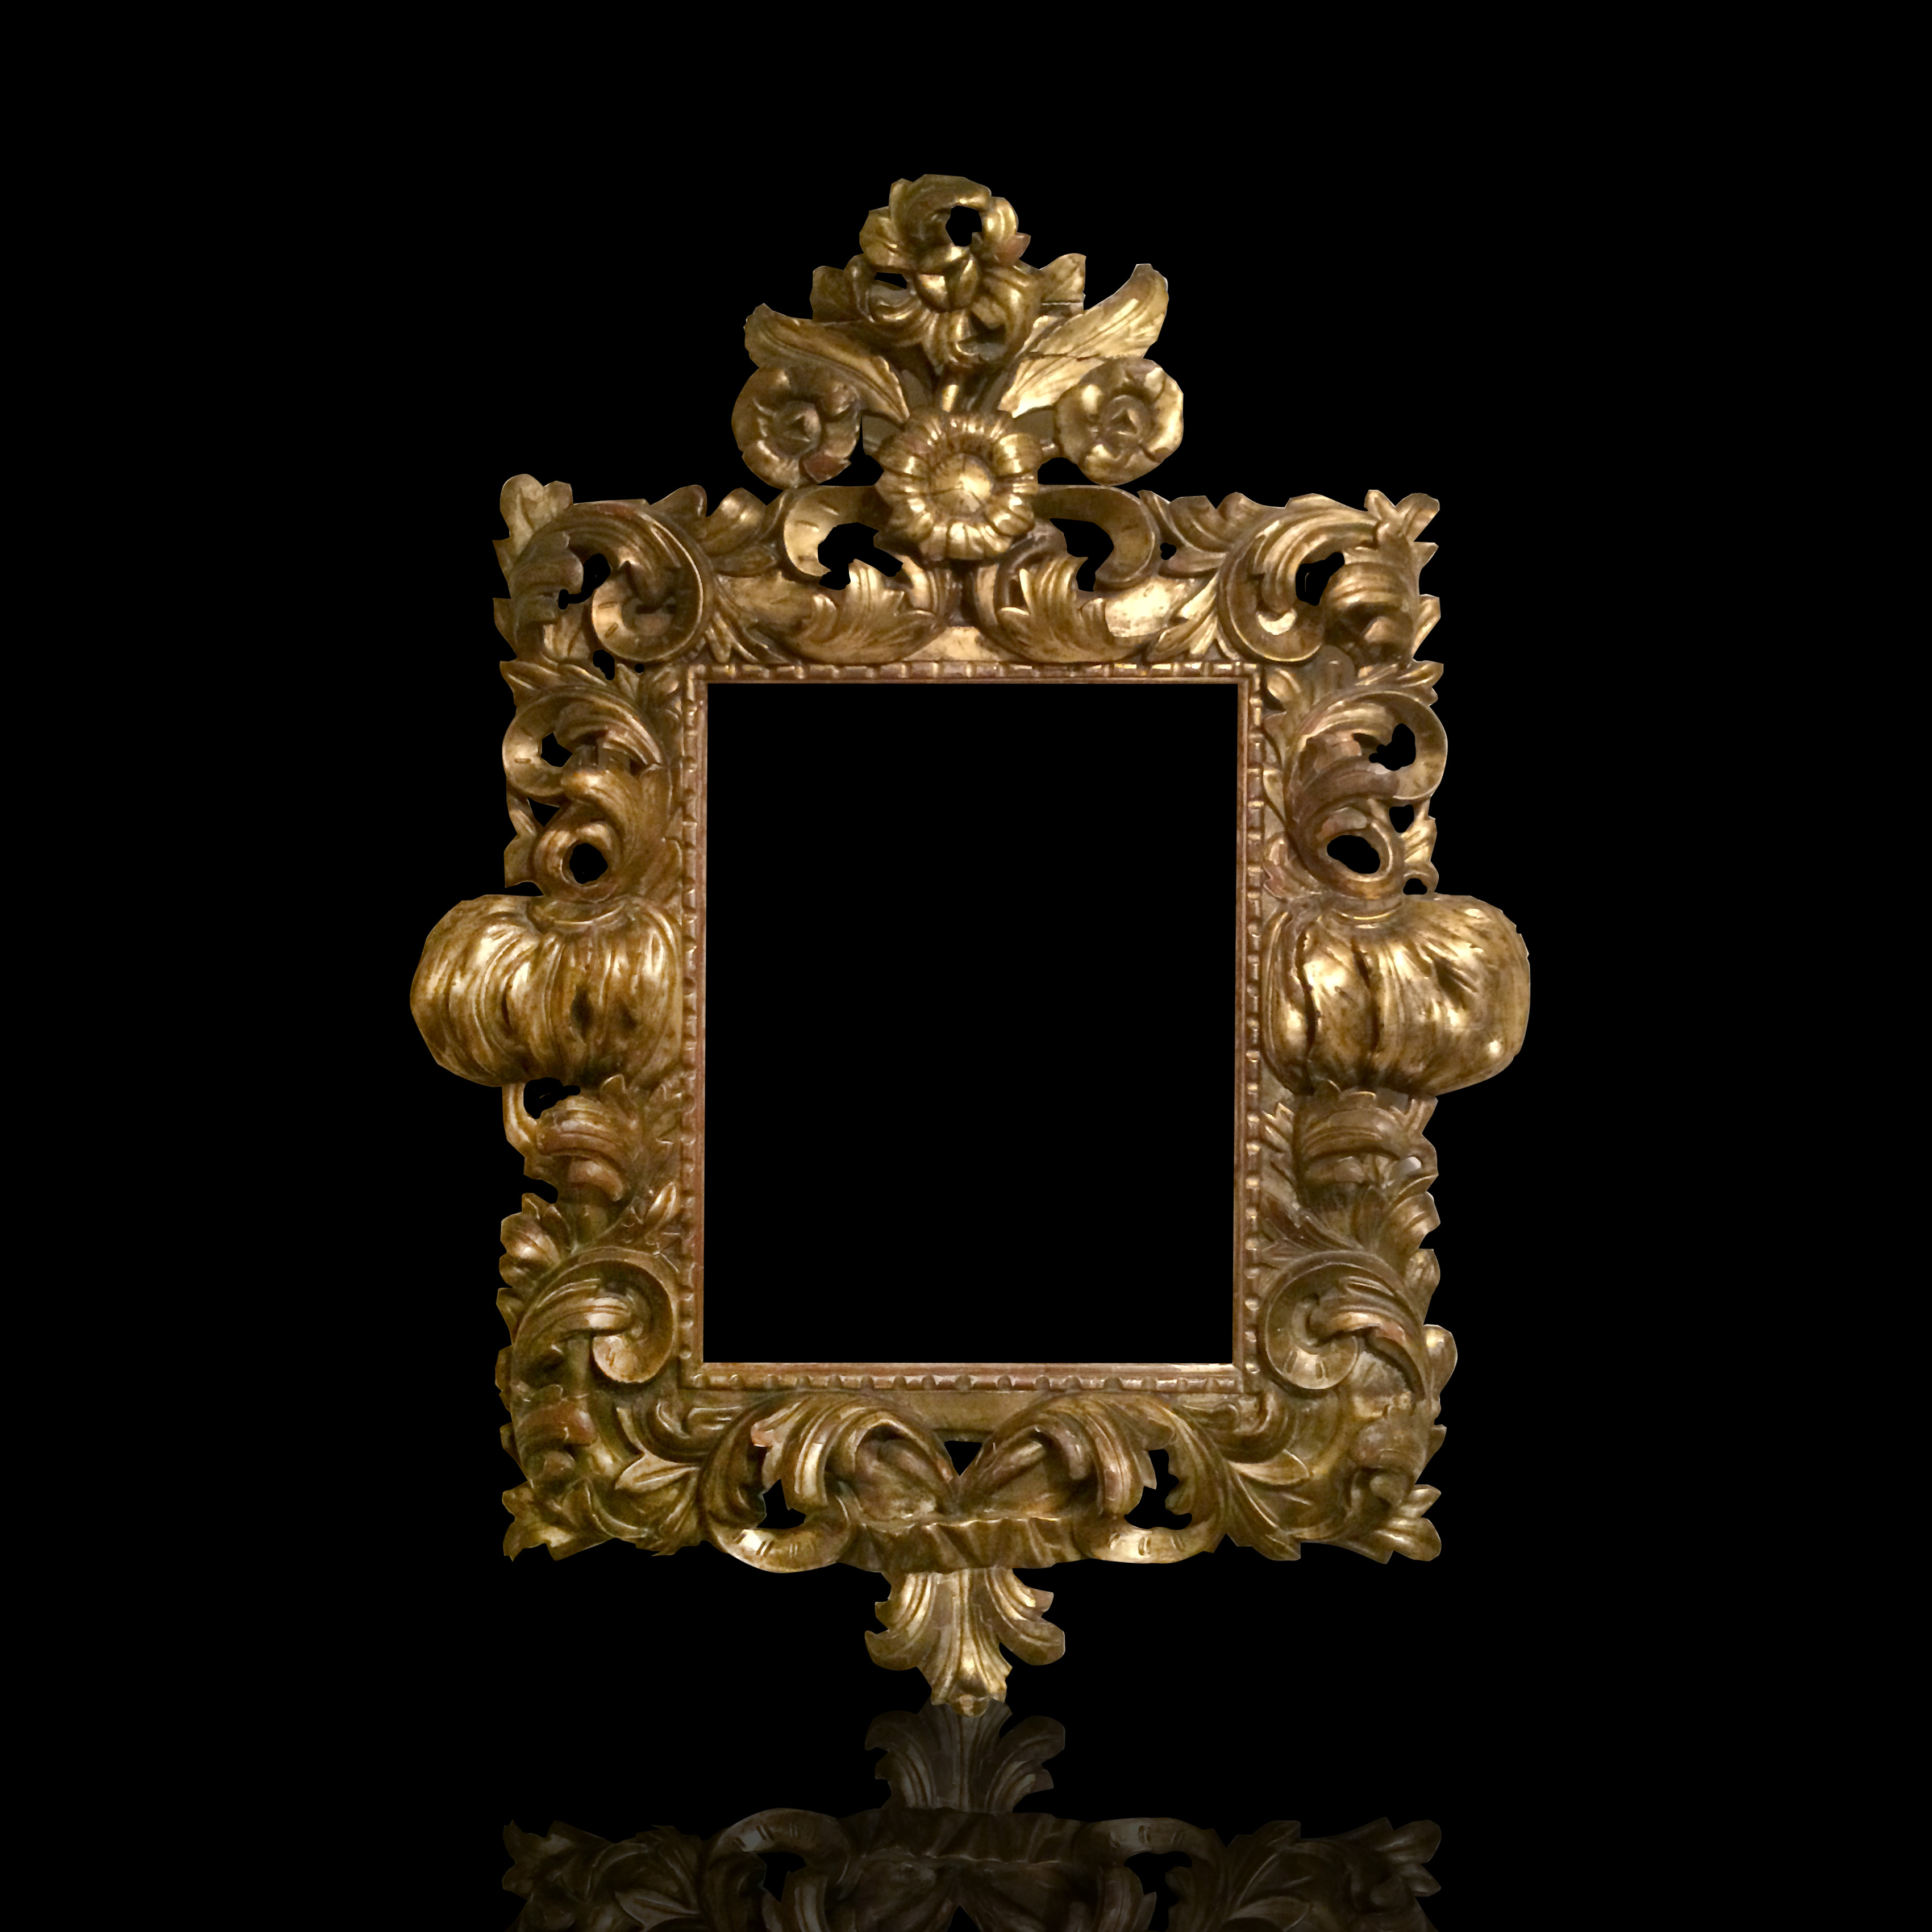 Hand-Carved Wooden Gilt Late Rococo Frame c.1780-1820